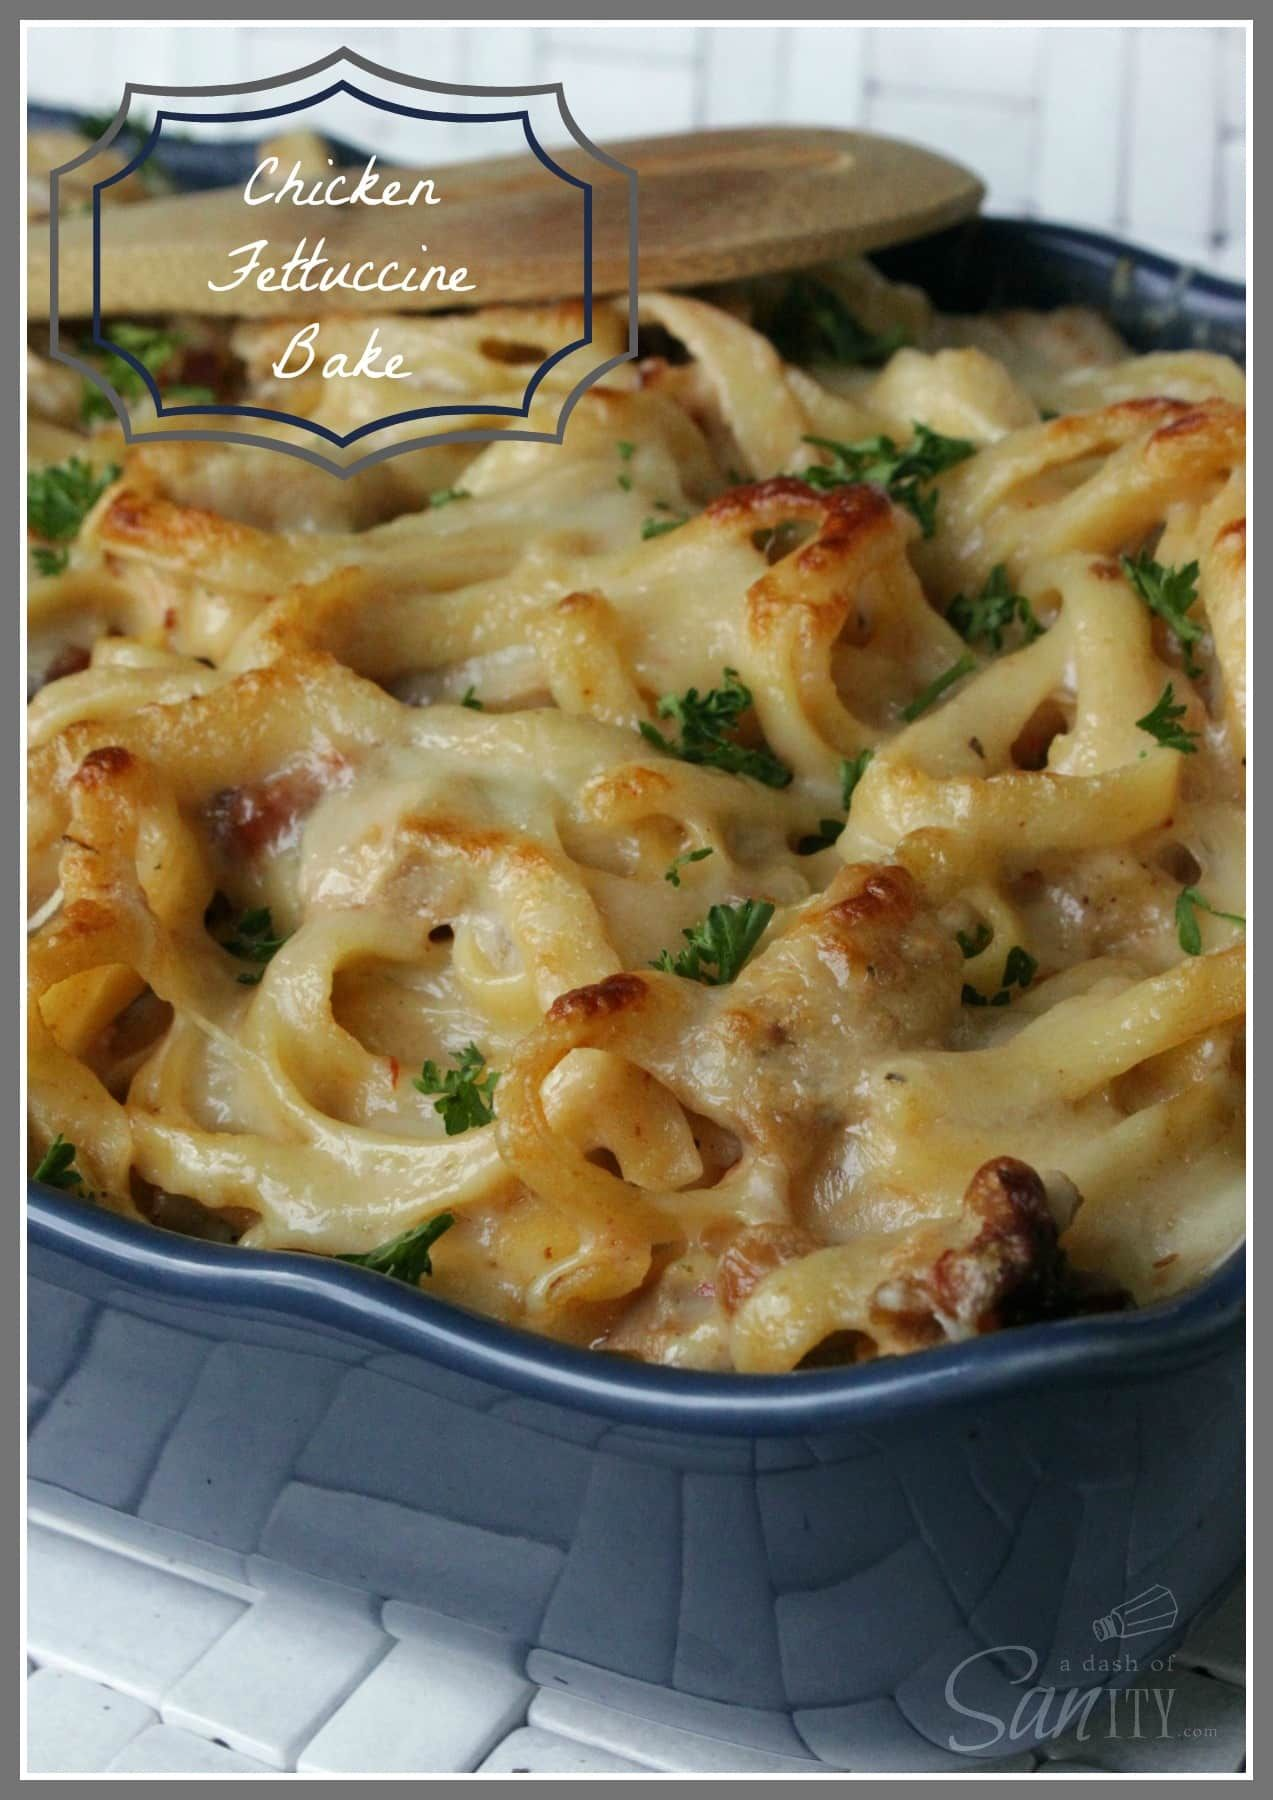 Photo of Chicken Fettuccine Bake – A Dash of Sanity